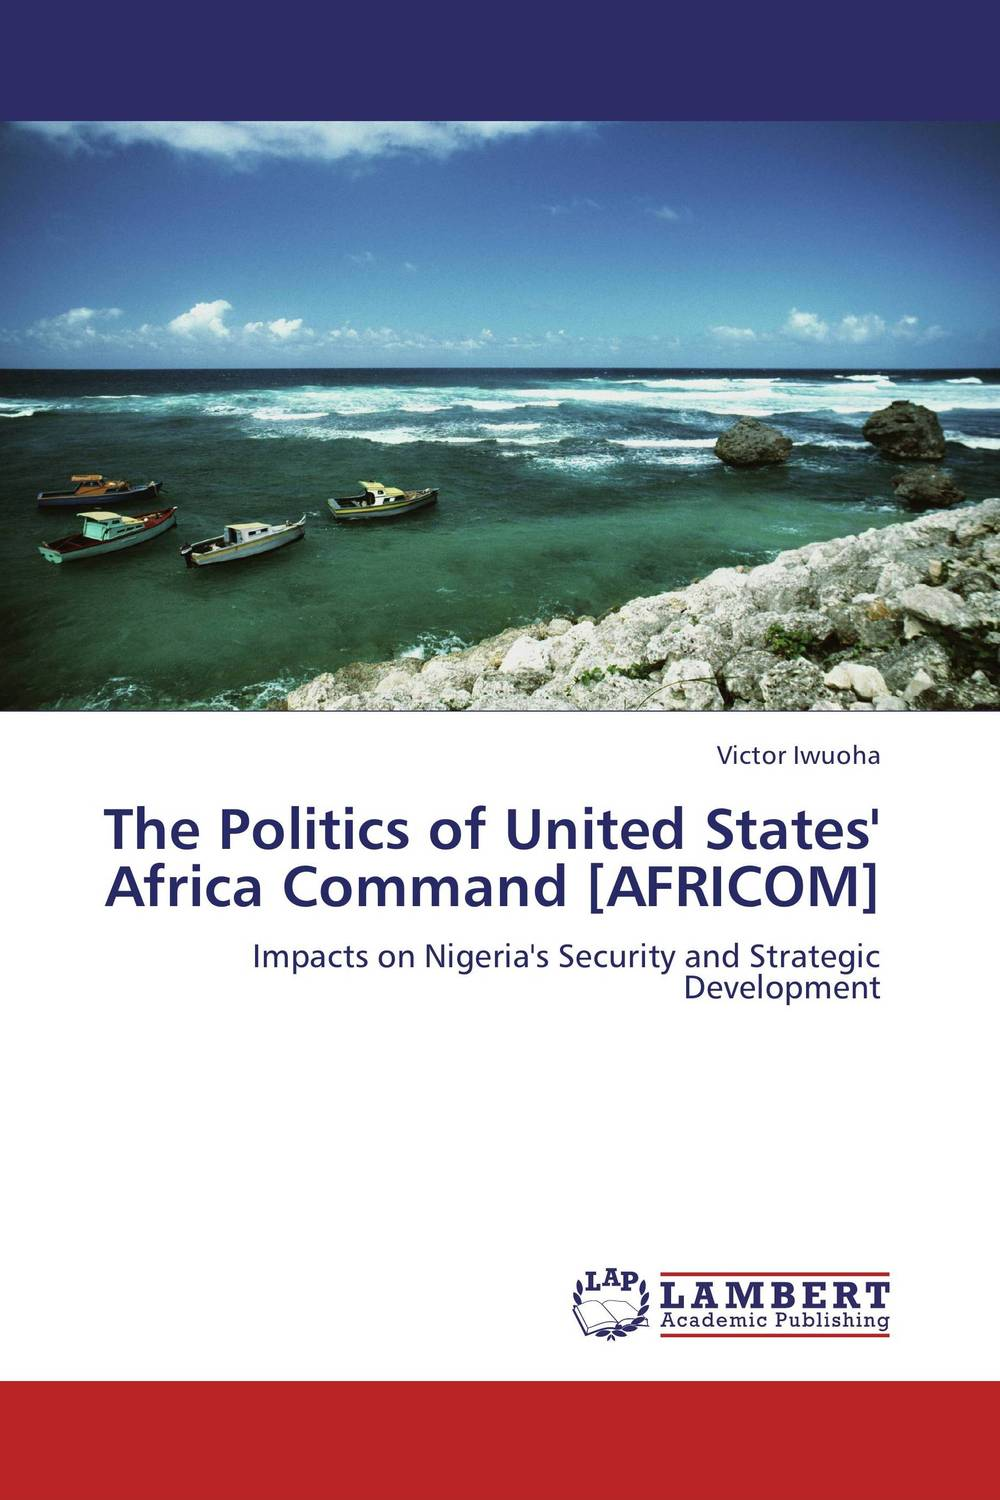 The Politics of United States' Africa Command [AFRICOM]